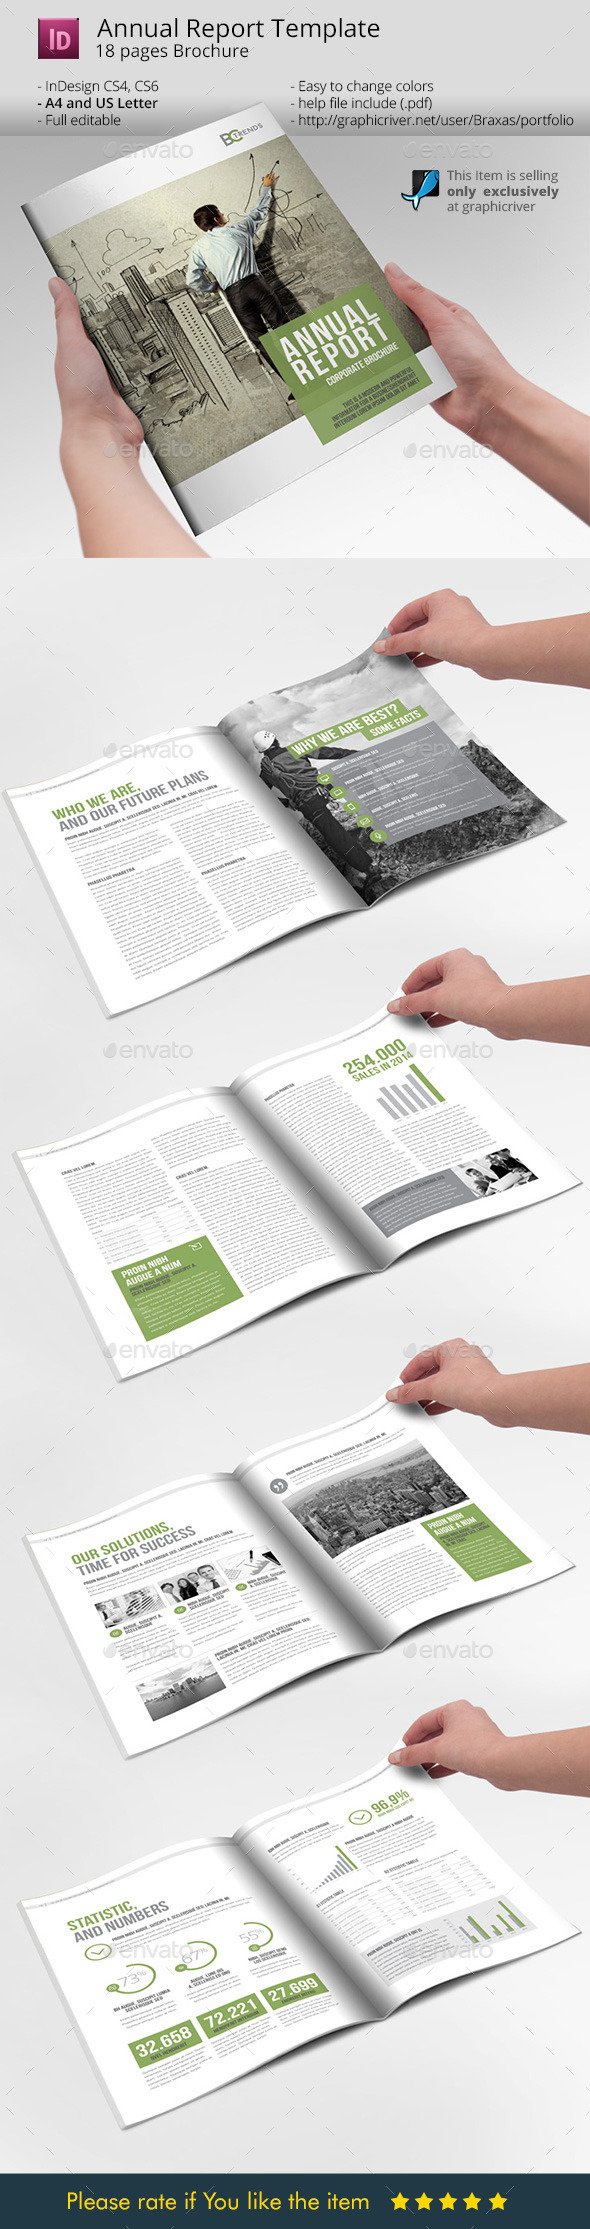 Business Brochure Annual Report - Informational Brochures